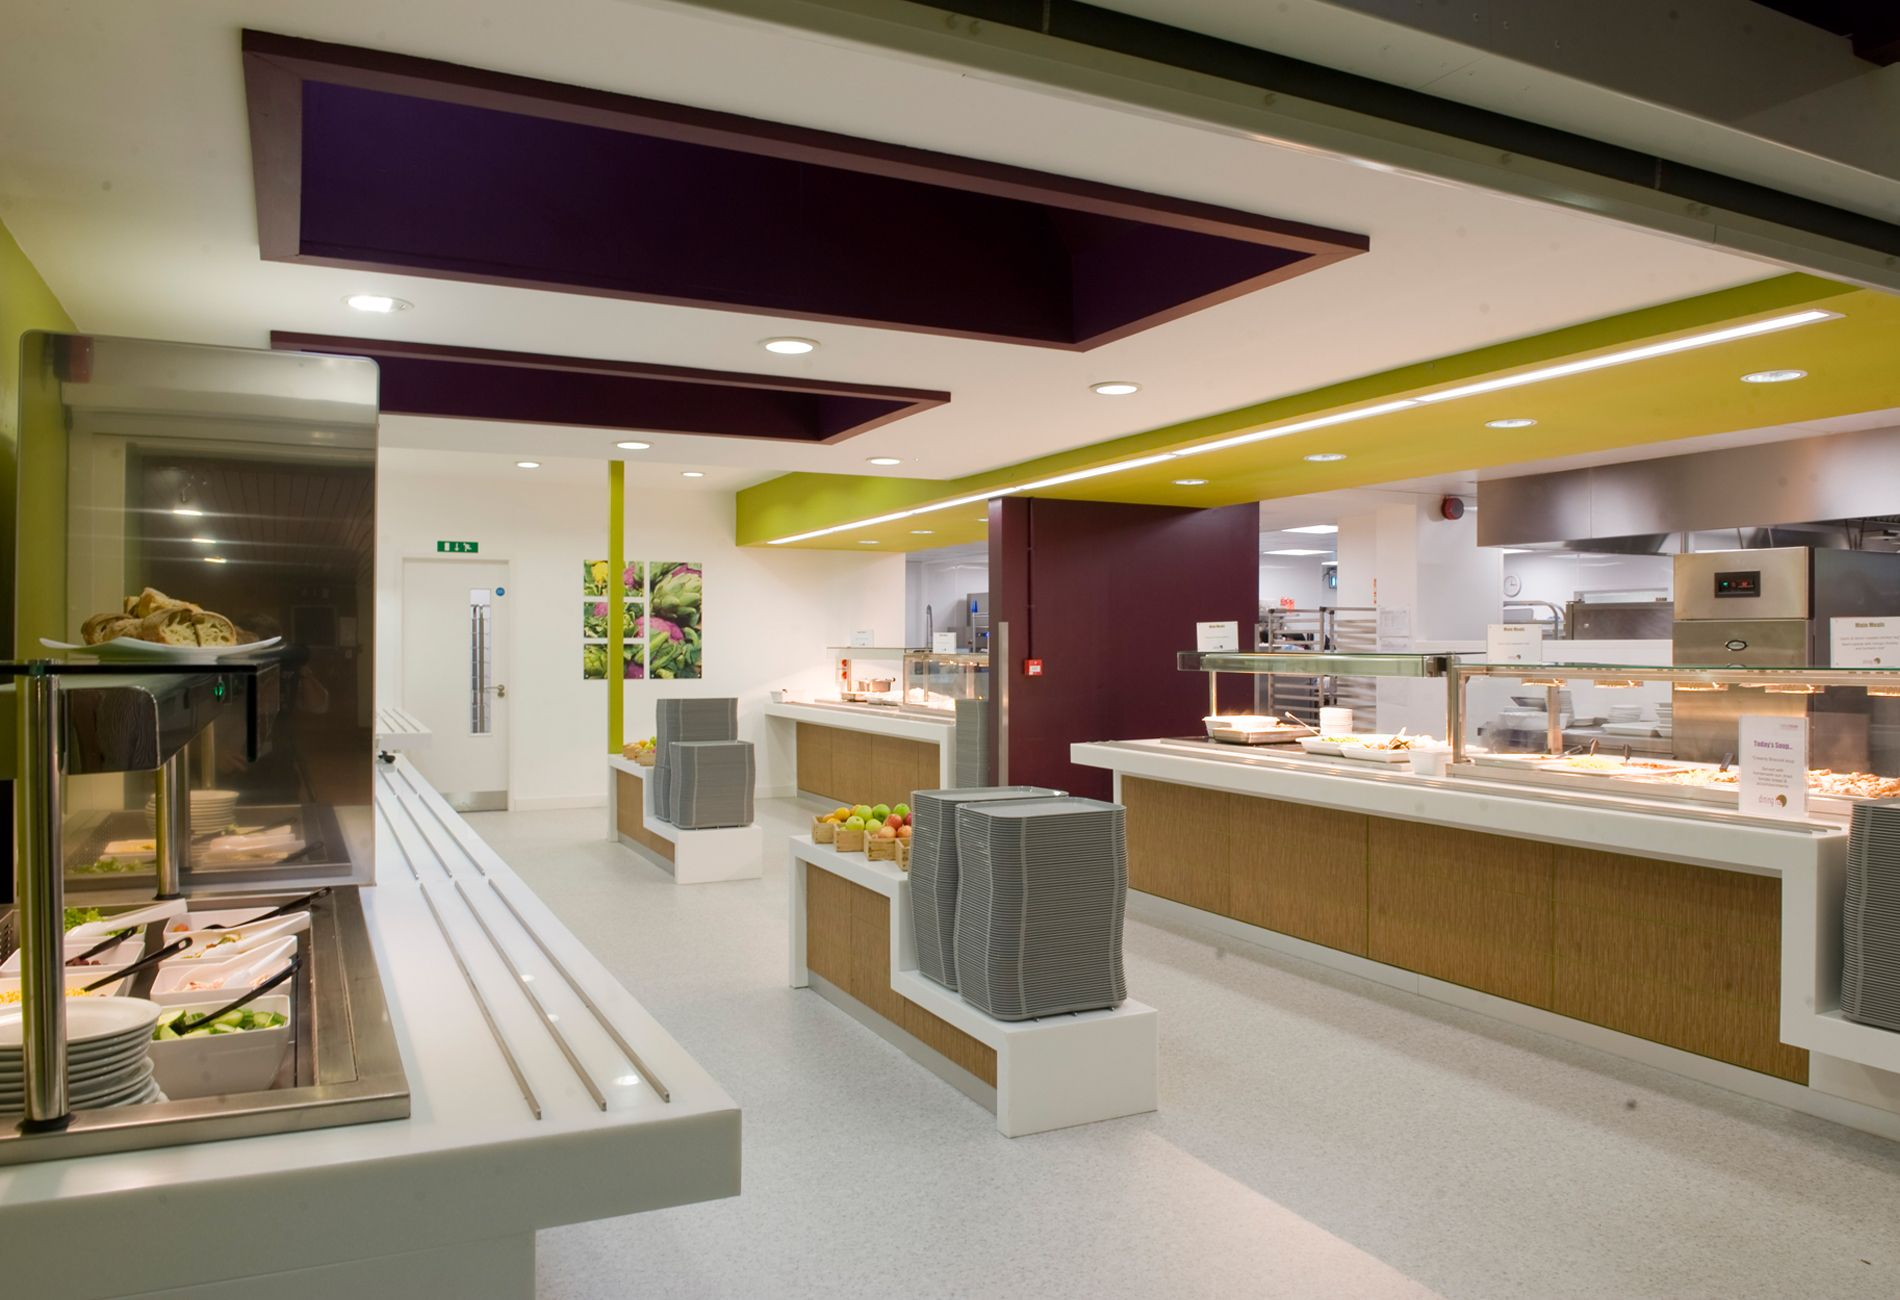 School servery google search kc pinterest canteen for Kitchen design services